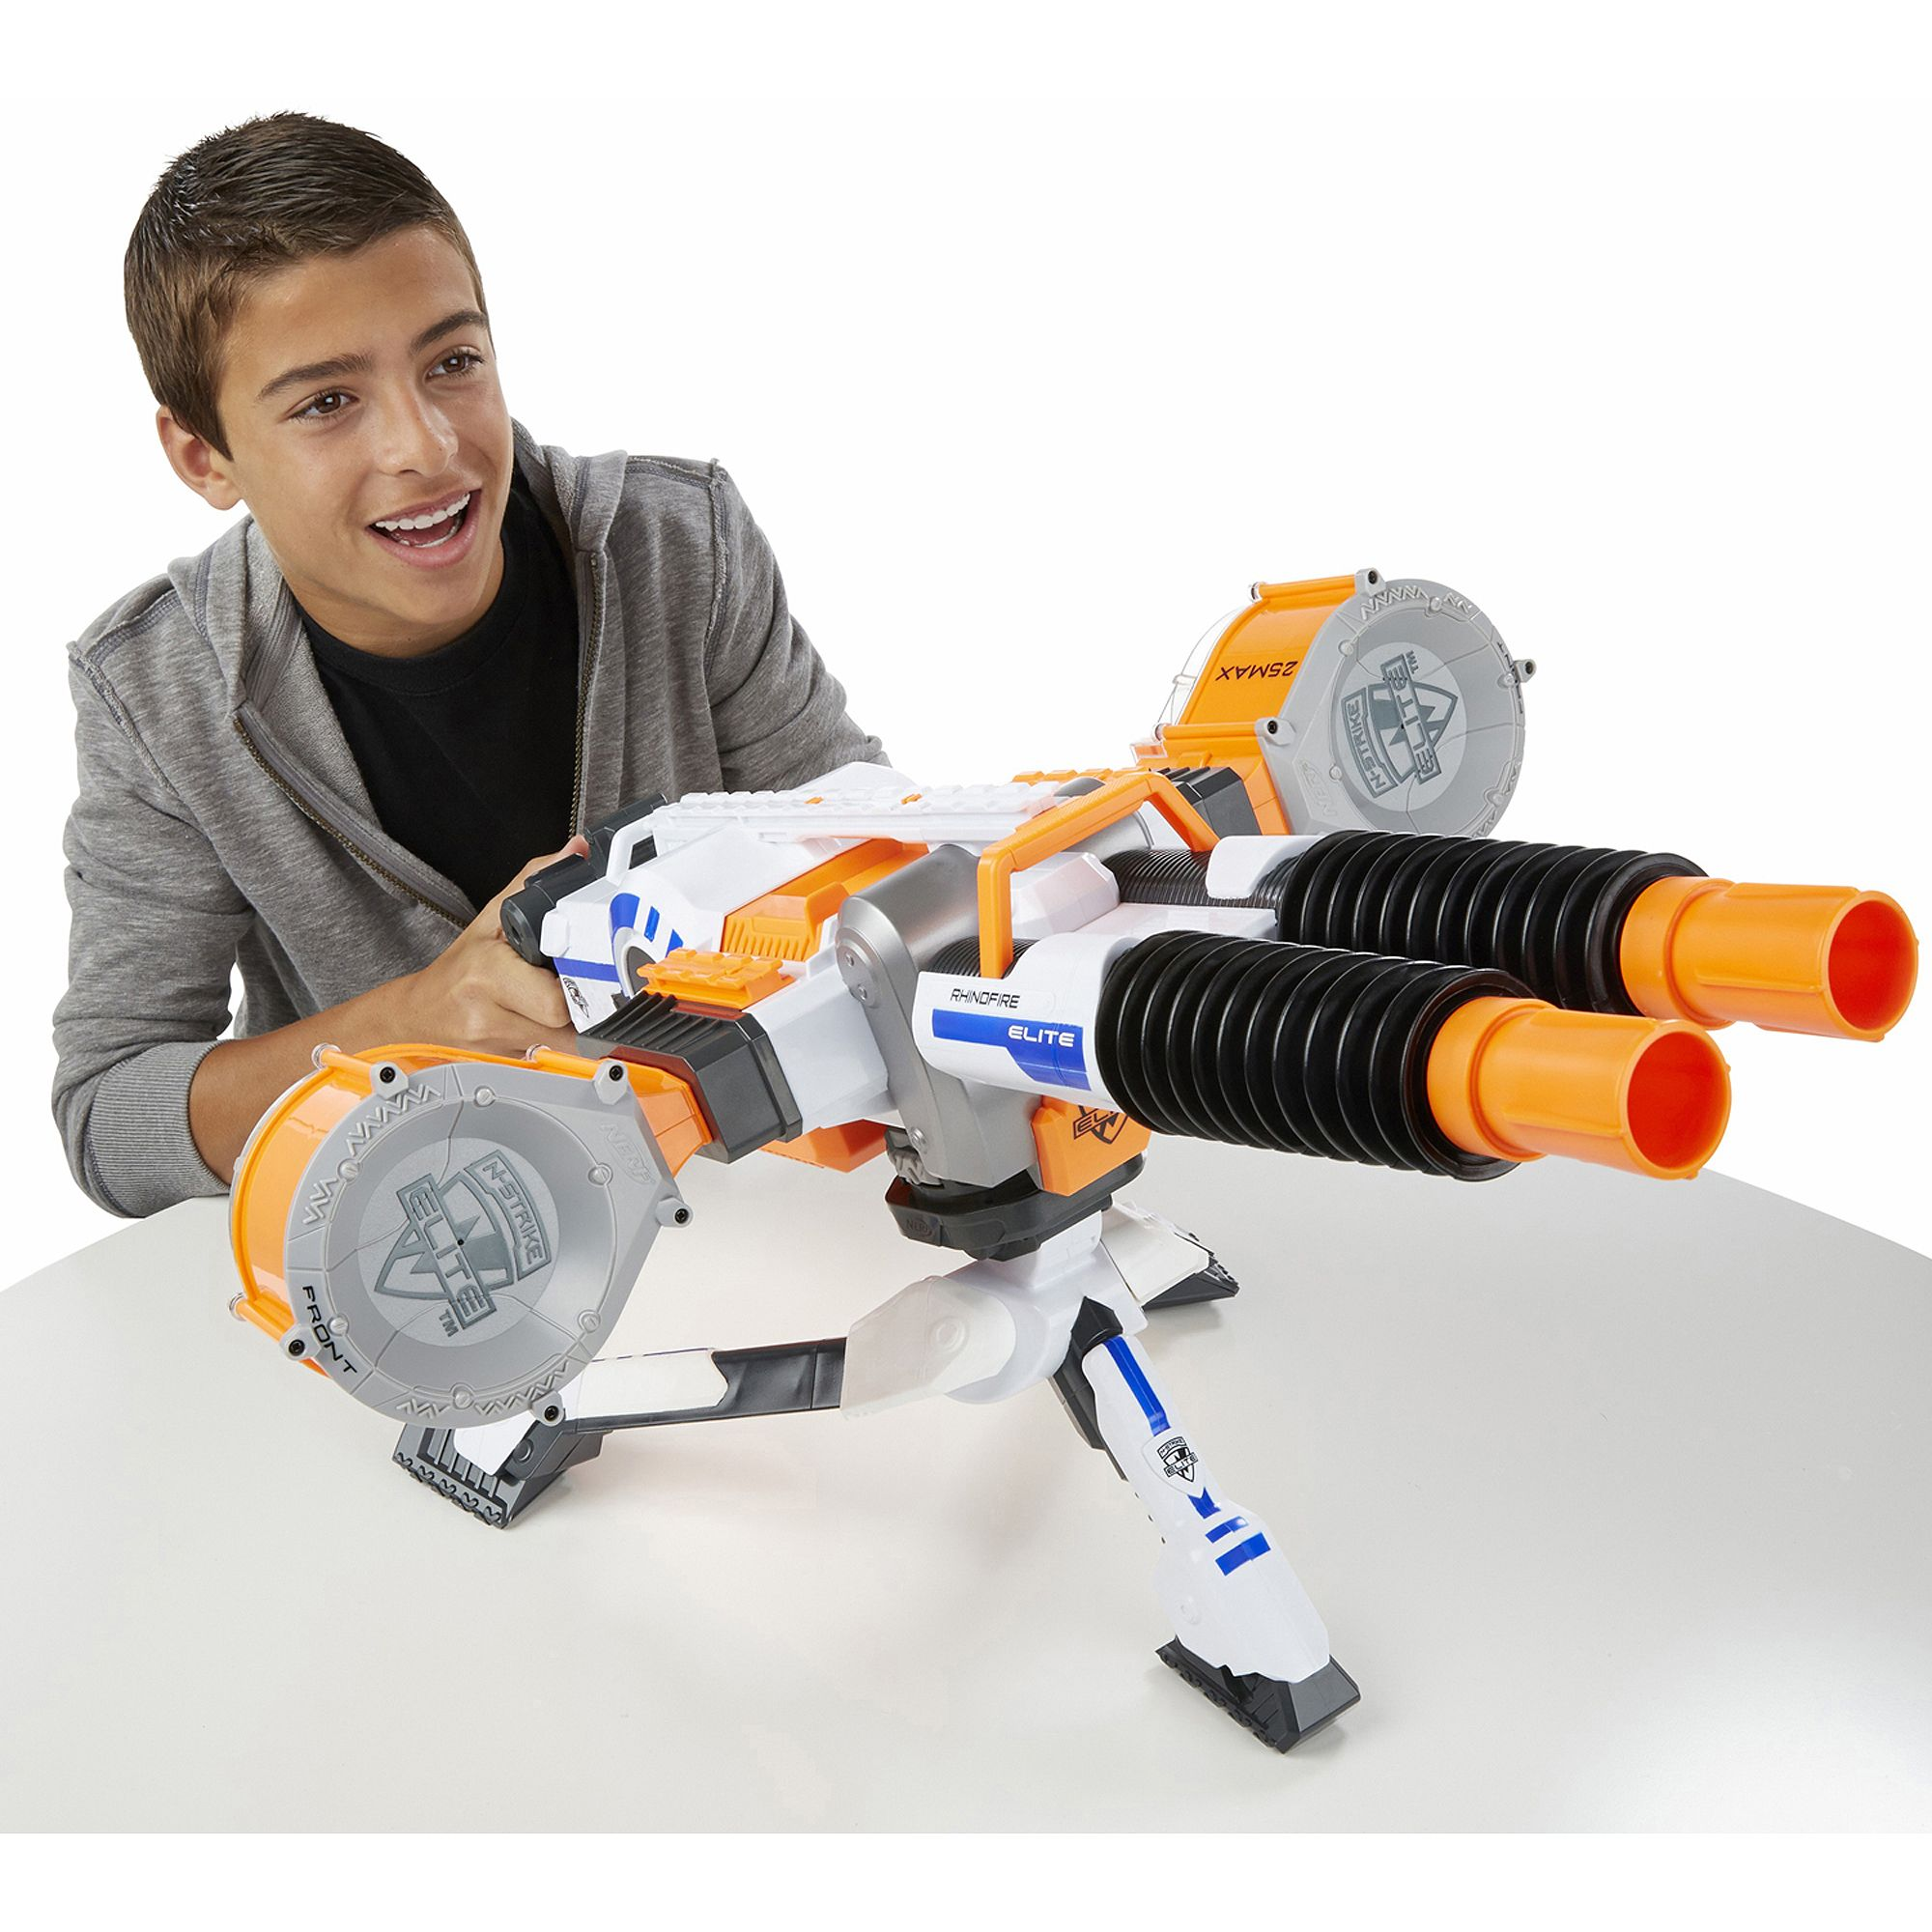 Buy Nerf N Strike Elite Rhino Fire Blaster at Walmart